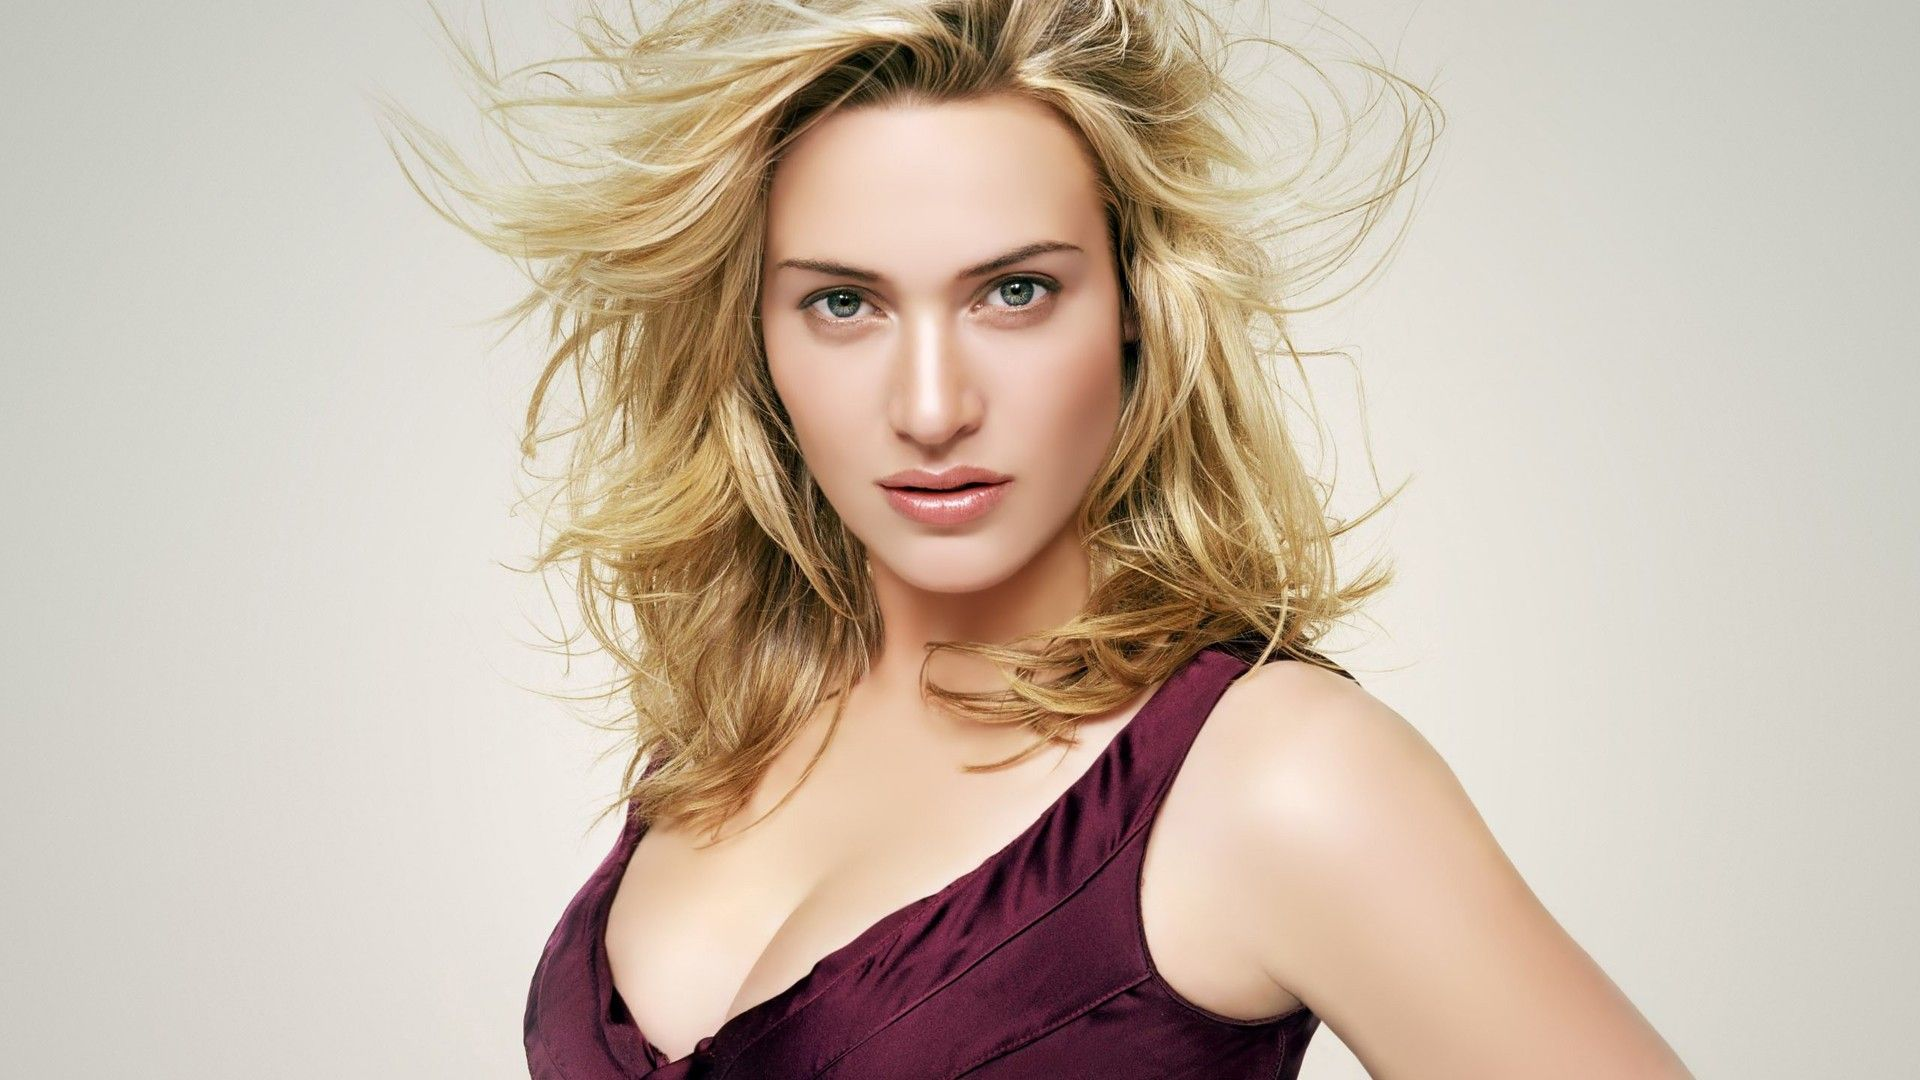 Kate winslet cute face stills